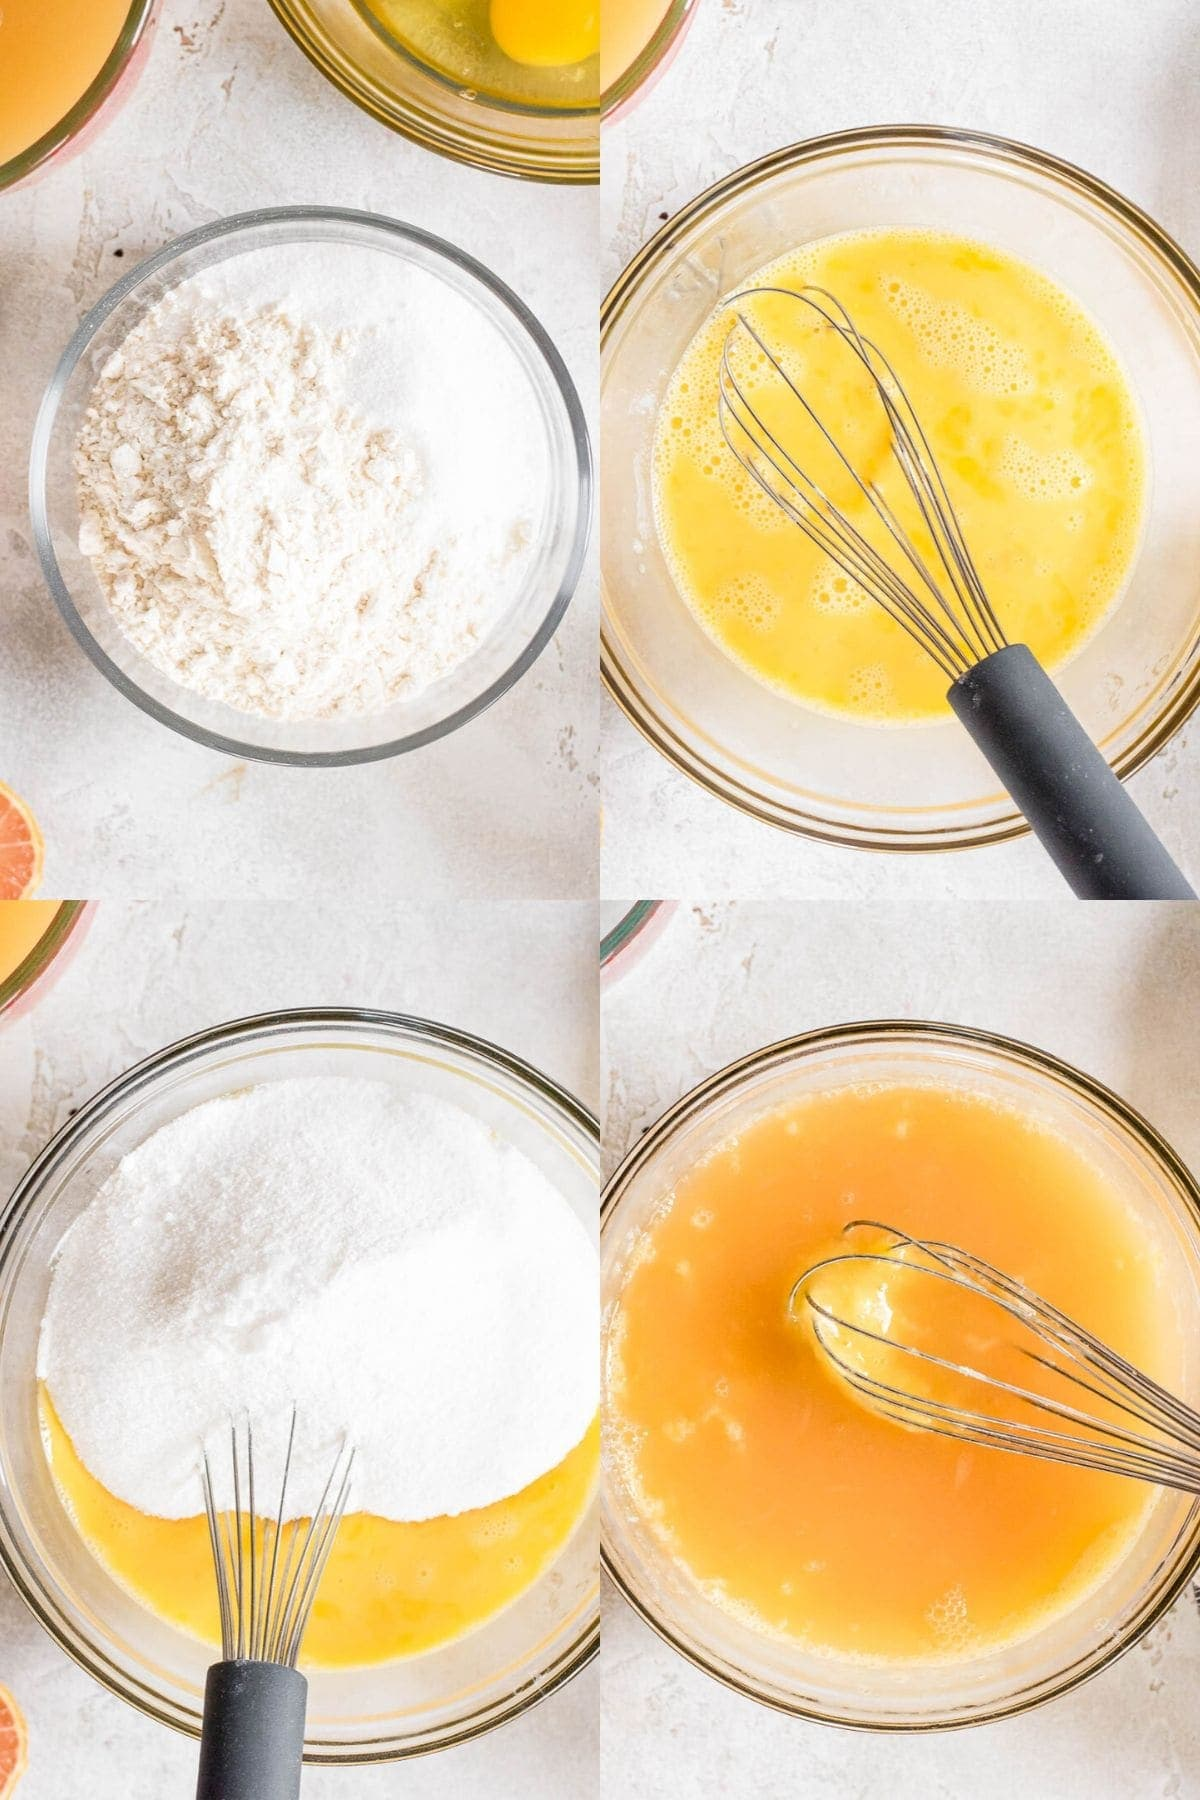 steps to make lemon bar filling